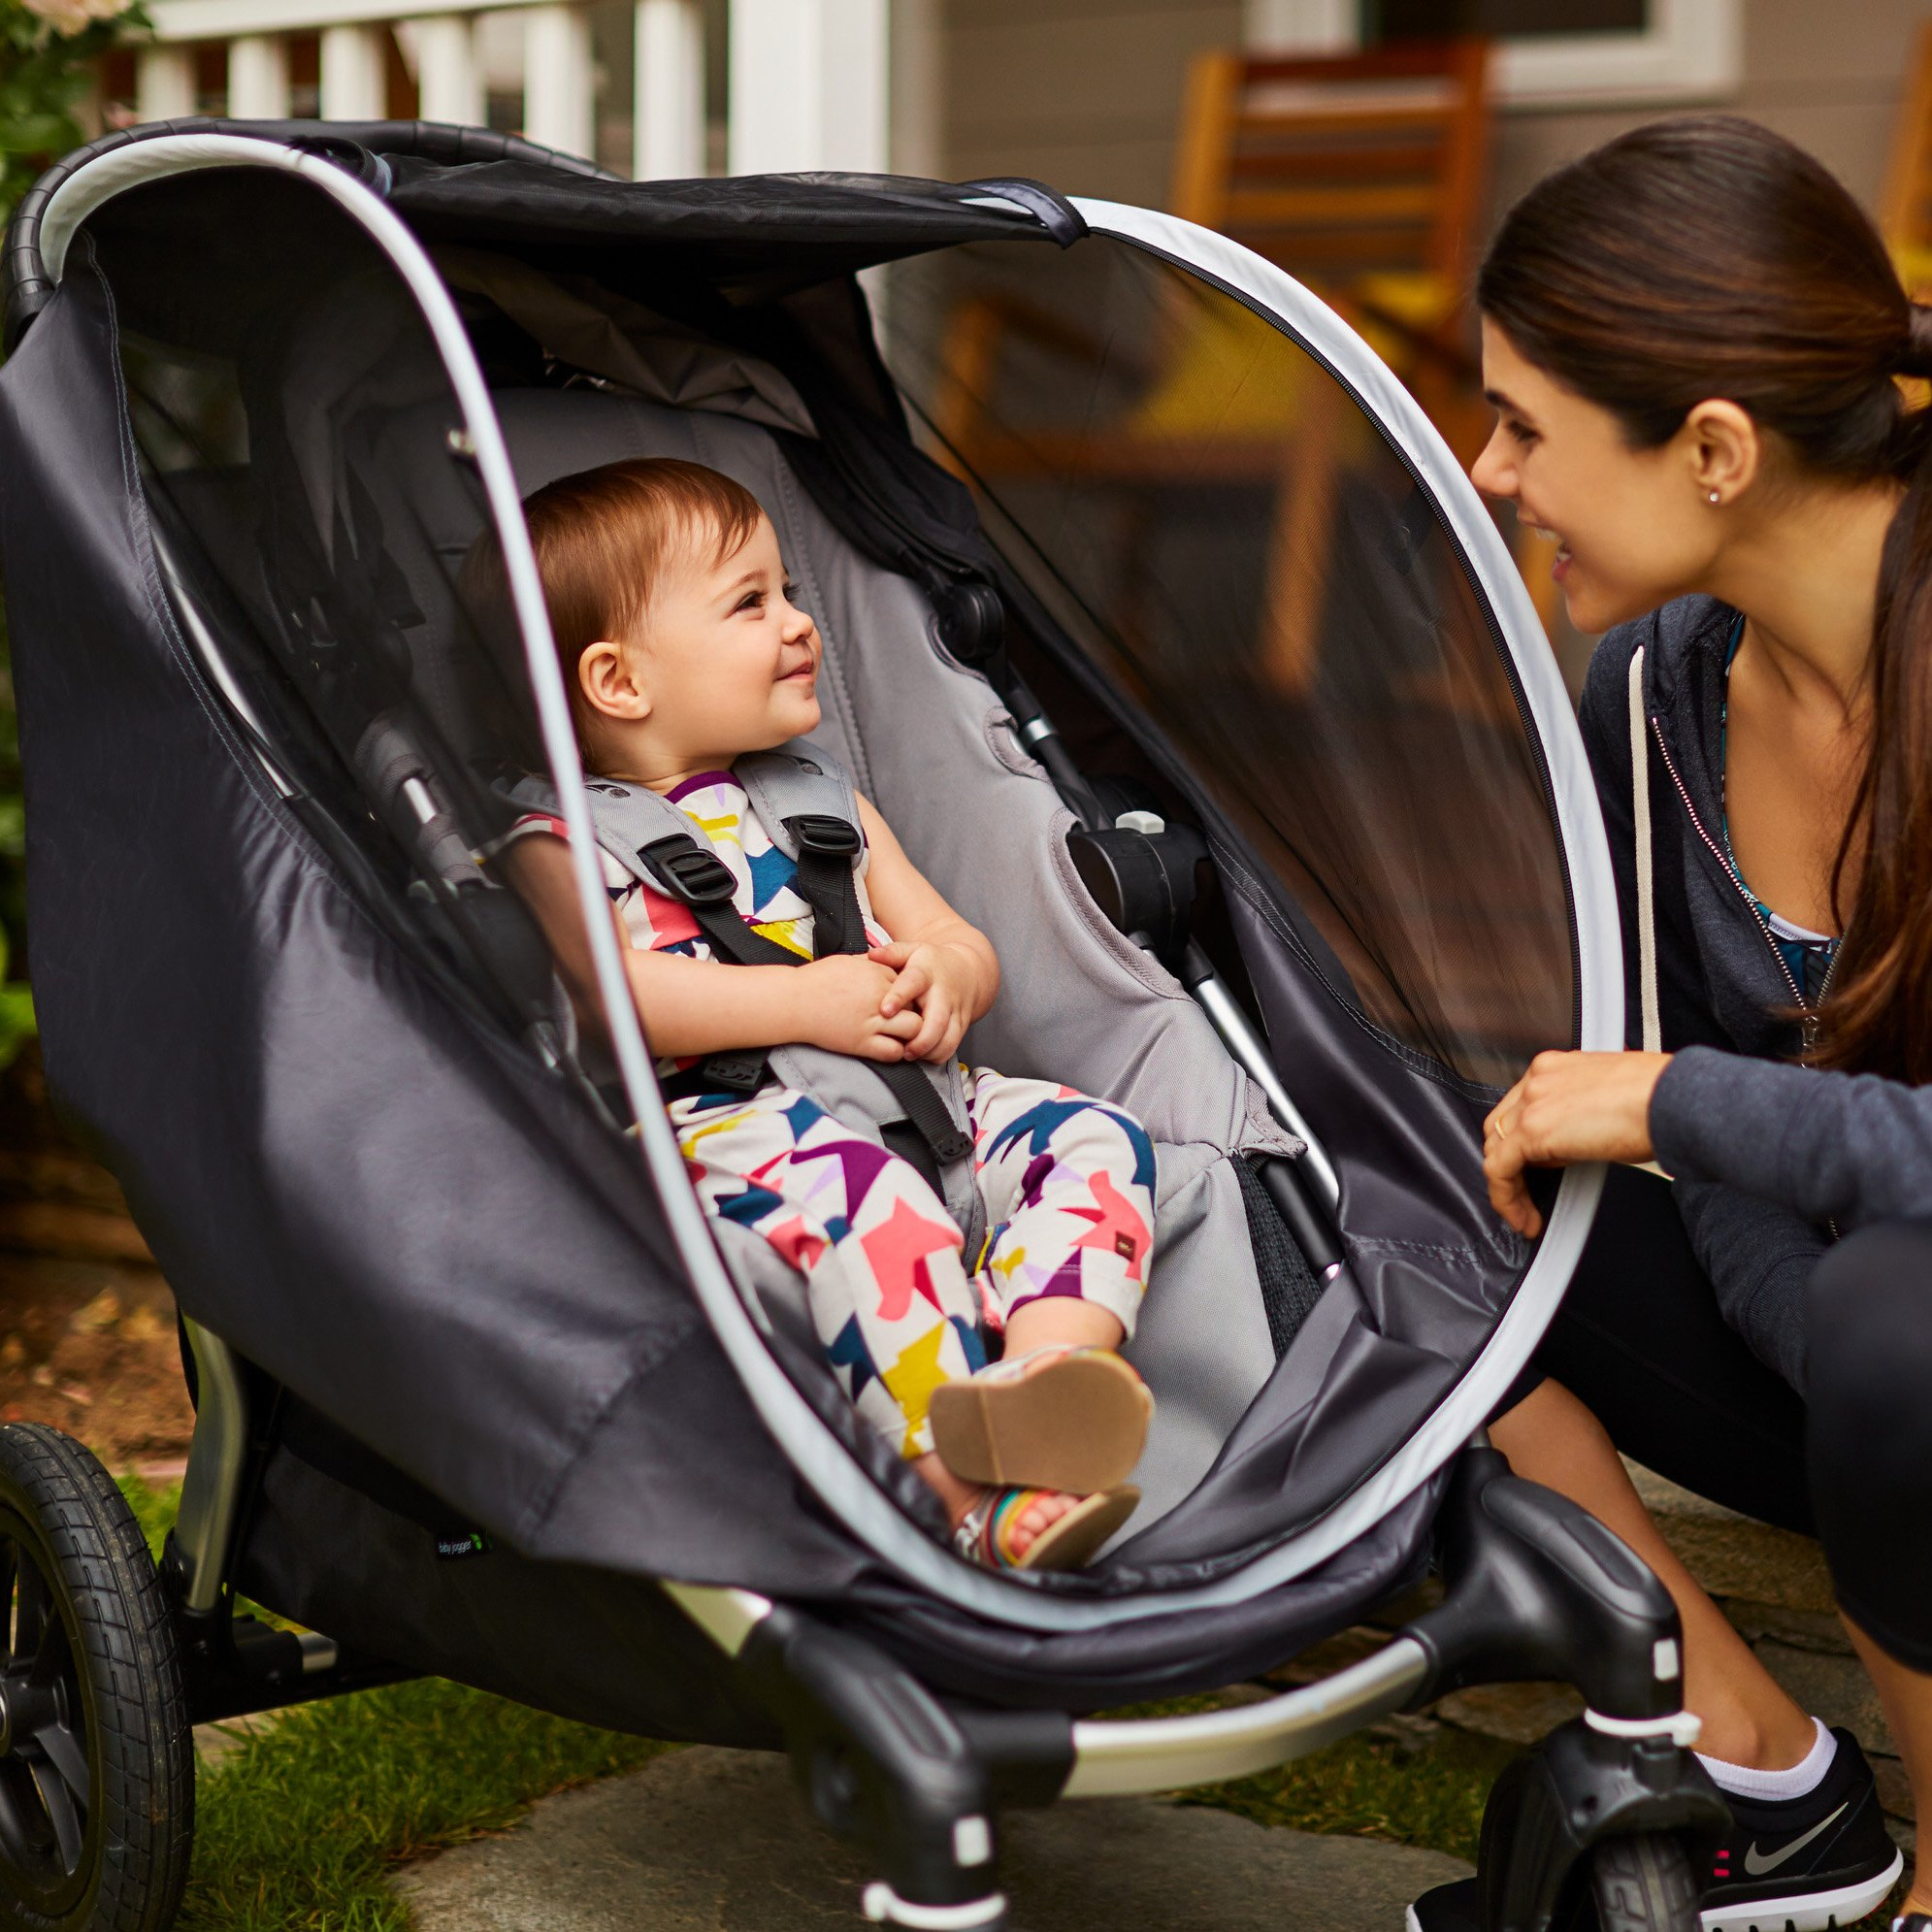 Munchkin Brica Shield Stroller Cover, Helps Block UVA/UVB Rays, Grey by Munchkin (Image #7)